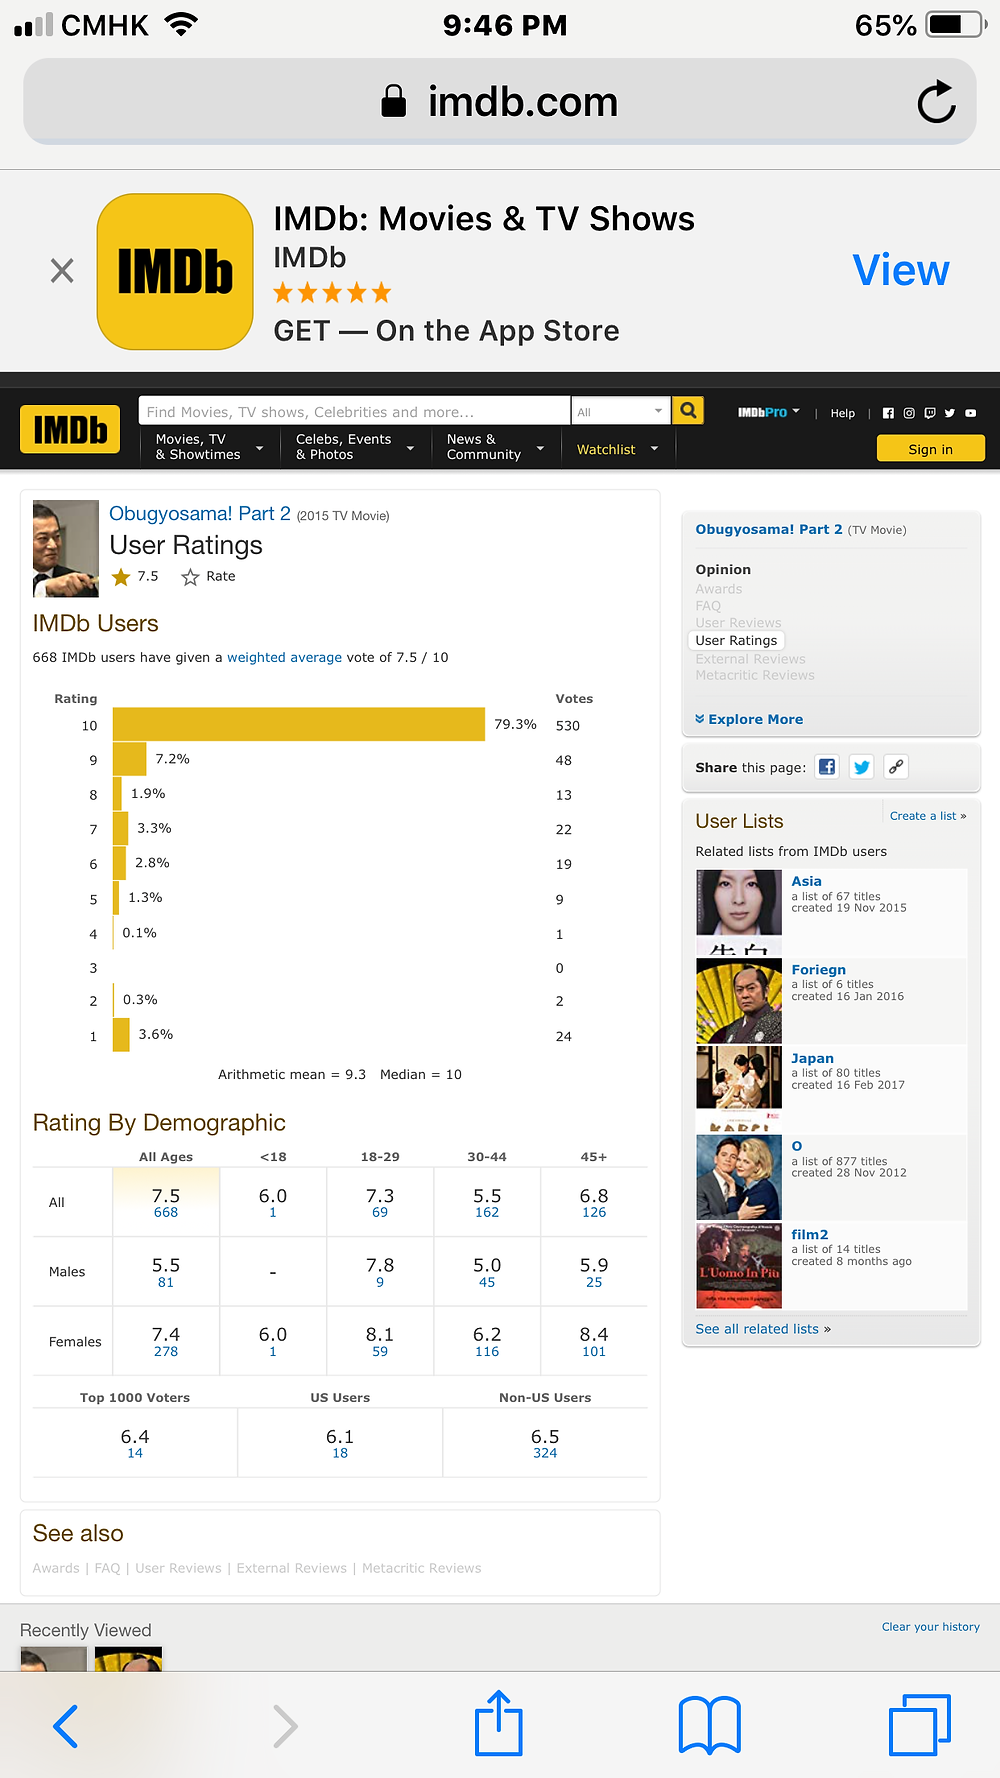 At 9:46 pm (China), Aug.15 2019. 668 IMDb users voted 7.5 / 10; Top 1000 users voted 6.4; US users voted 6.1; Non US users voted 6.5 (?).